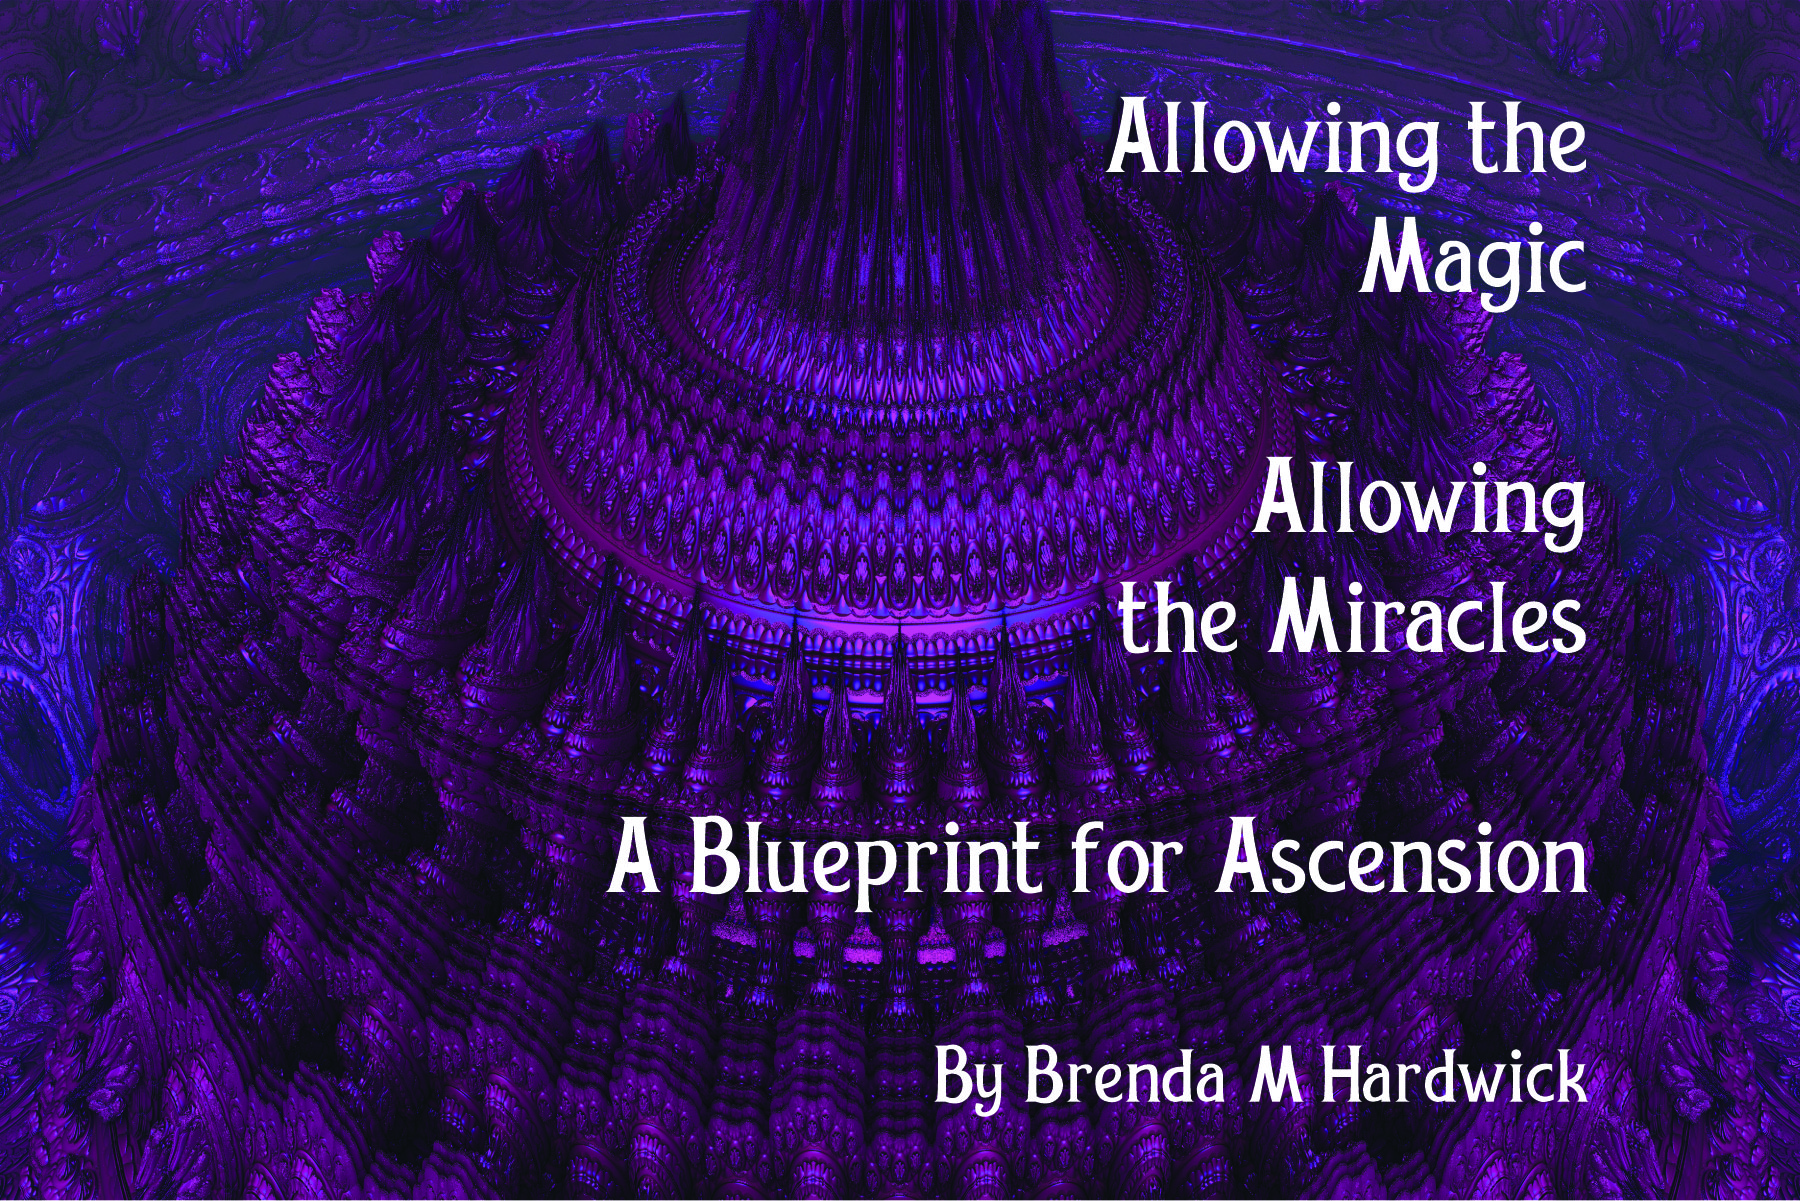 Allowing The Magic, Allowing the Miracles, A Blueprint to Ascension